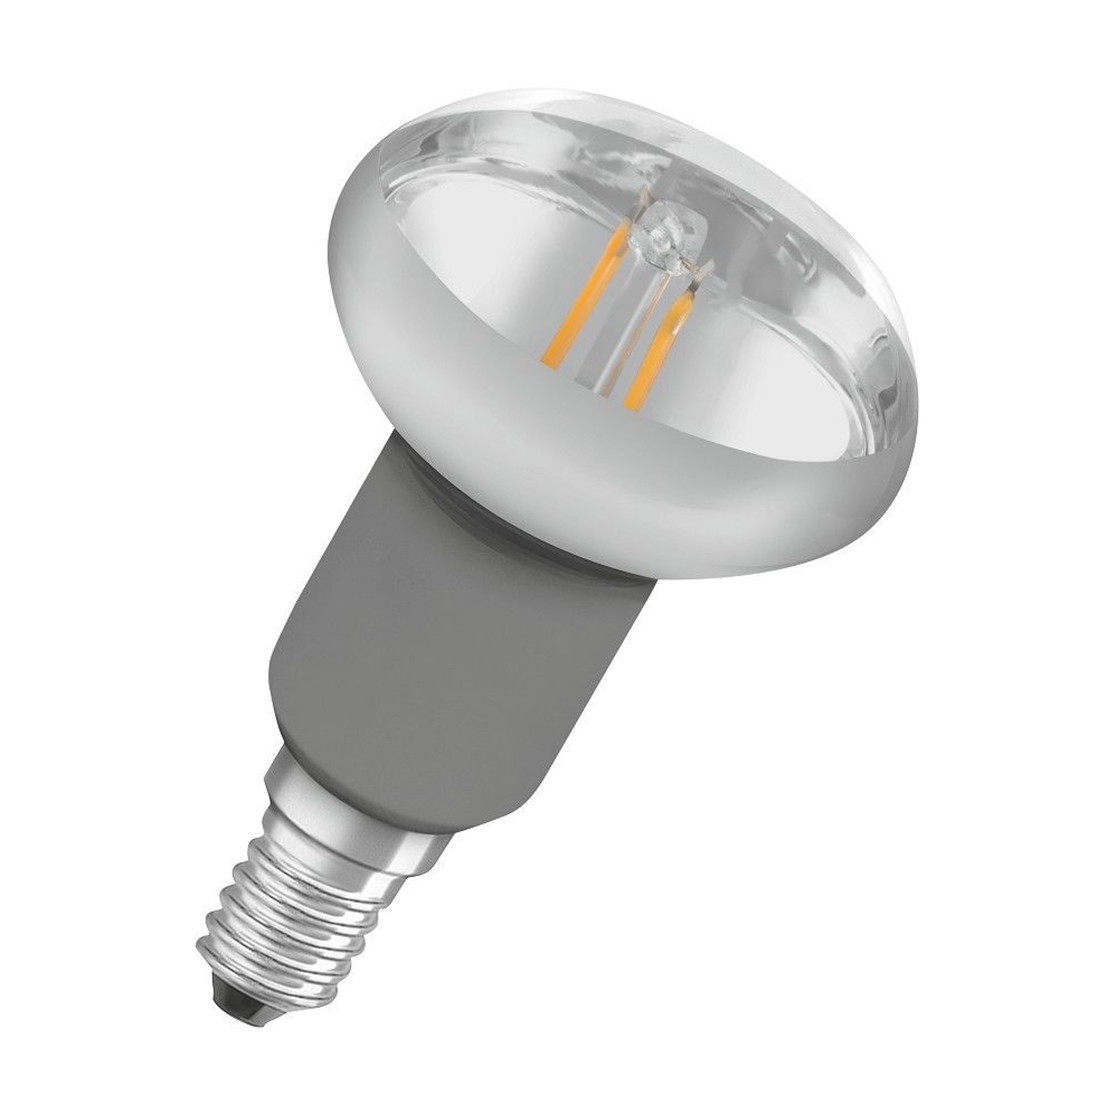 Led E14 Dimmbar Led E14 Dimmbar E14 3 5w 926 Led Kerzenlampe Matt Voll